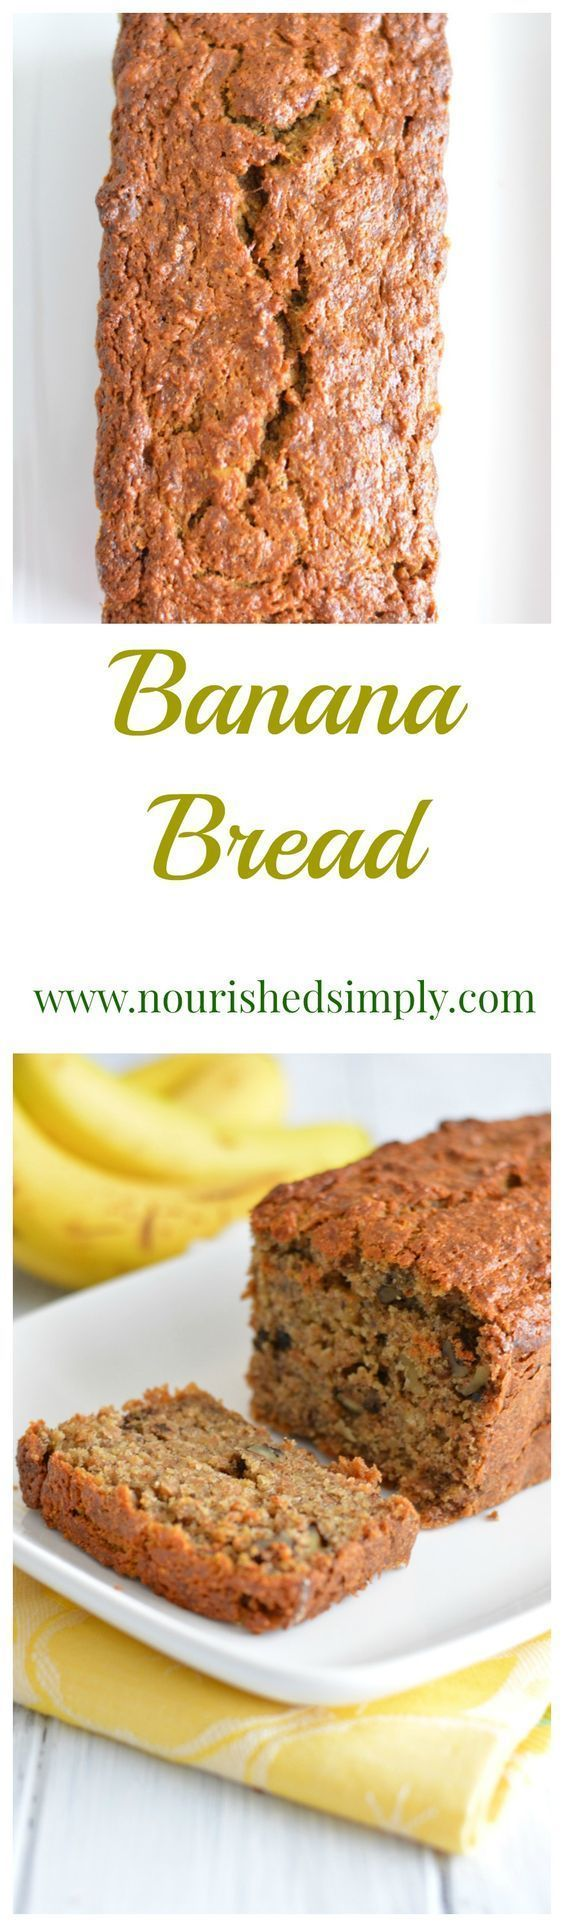 Leftover banana's should not go to waste.  Homemade banana bread is a great way to use older bananas.